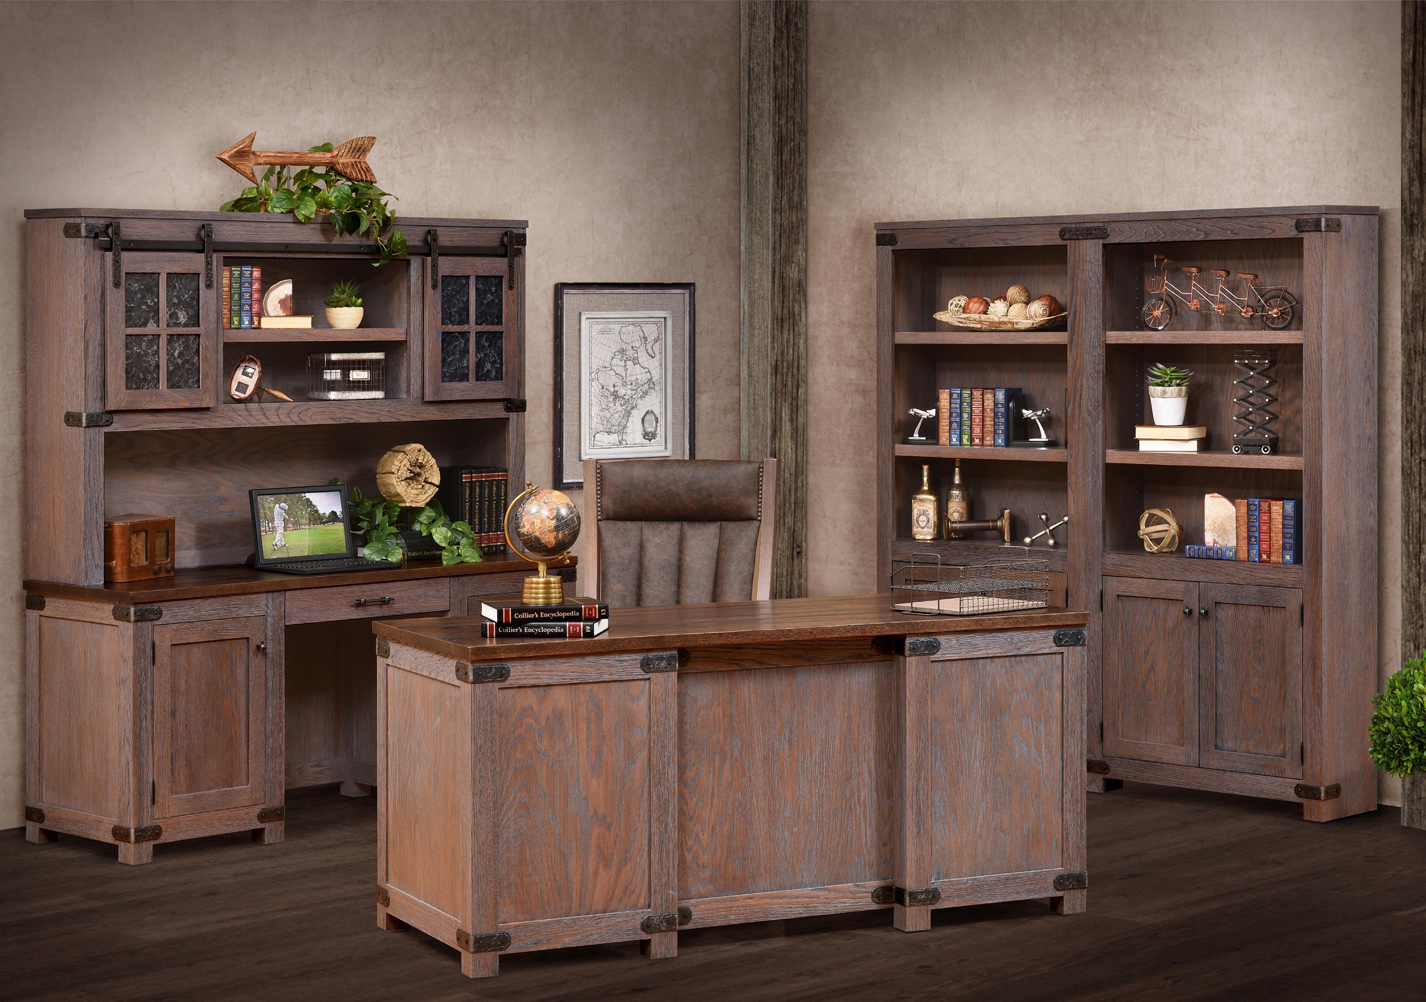 Georgetown Office Furniture: Country Charm, Urban Vibe